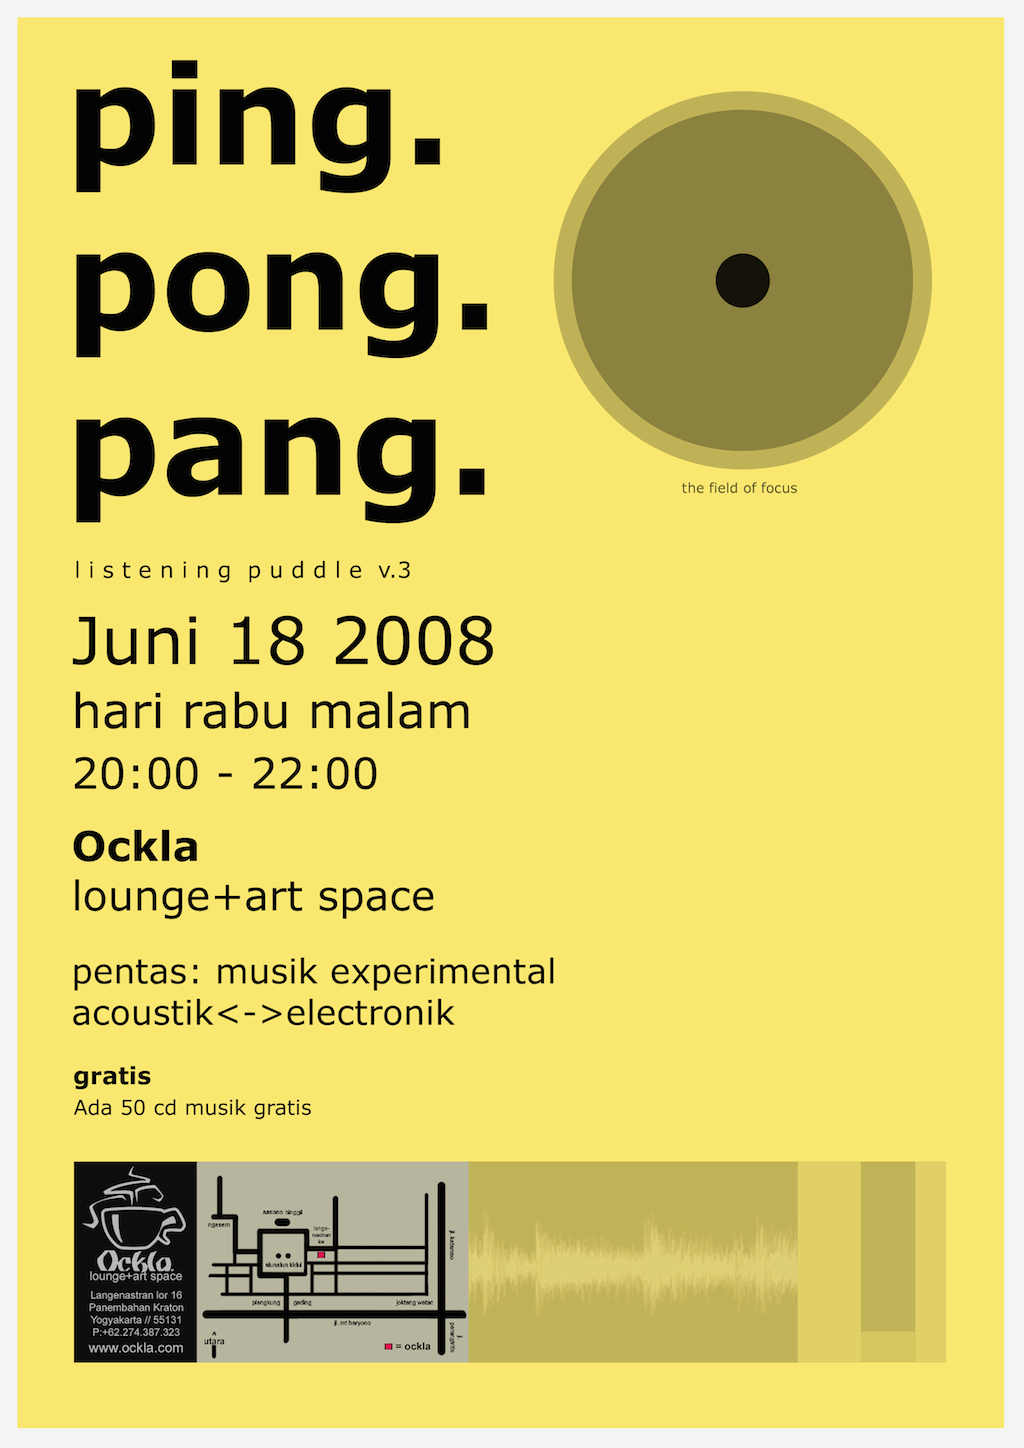 Ping Pong Pang poster for performance event in Yogyakarta, 2008